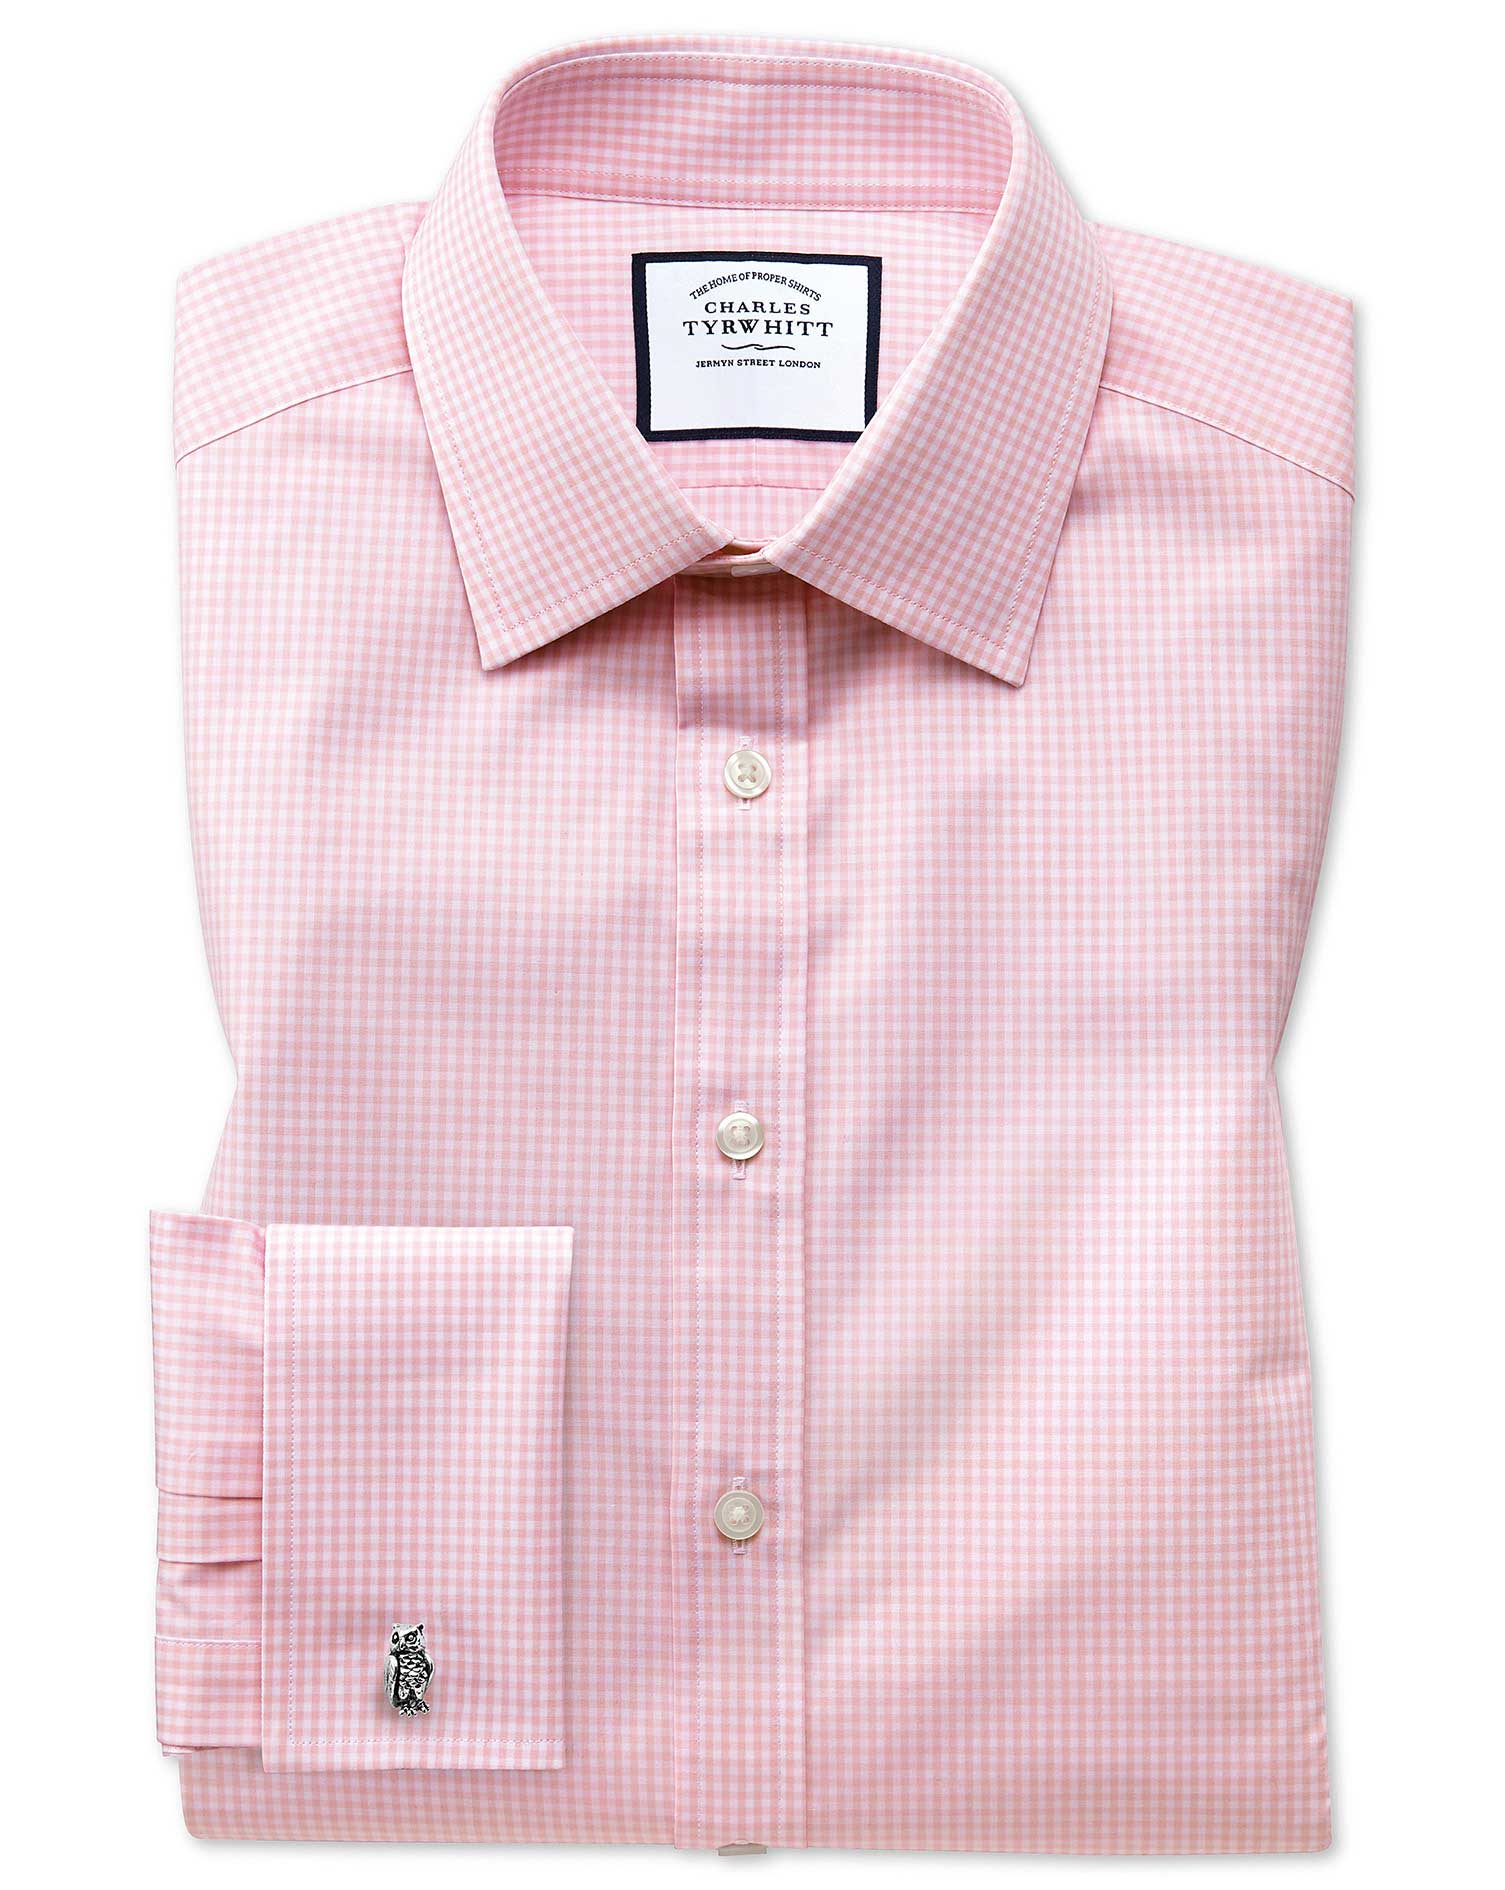 Slim Fit Small Gingham Light Pink Cotton Formal Shirt Double Cuff Size 18/37 by Charles Tyrwhitt